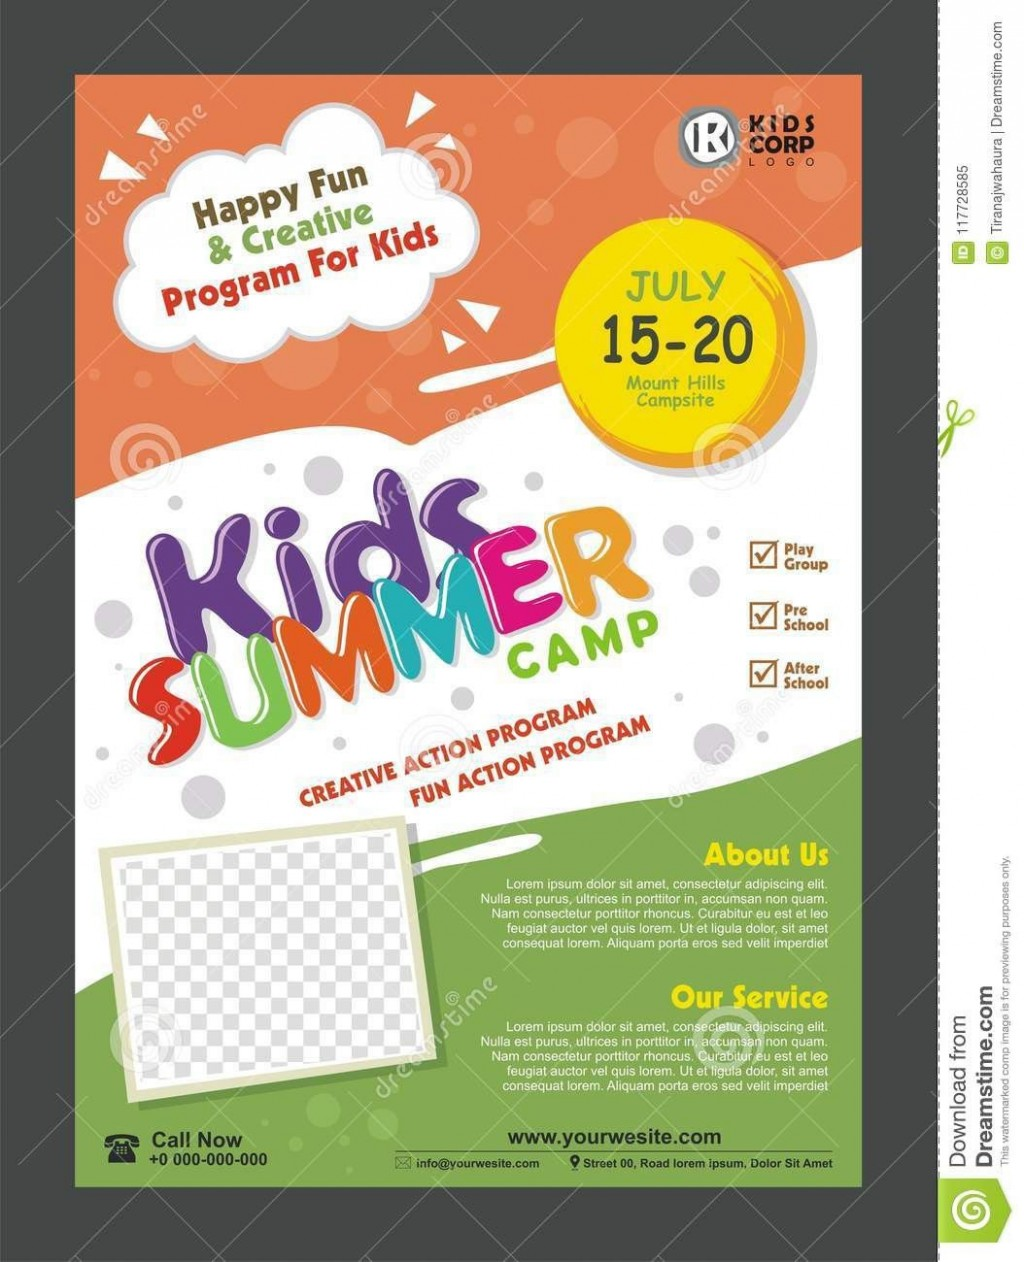 003 Surprising Free After School Flyer Template Picture  TemplatesLarge